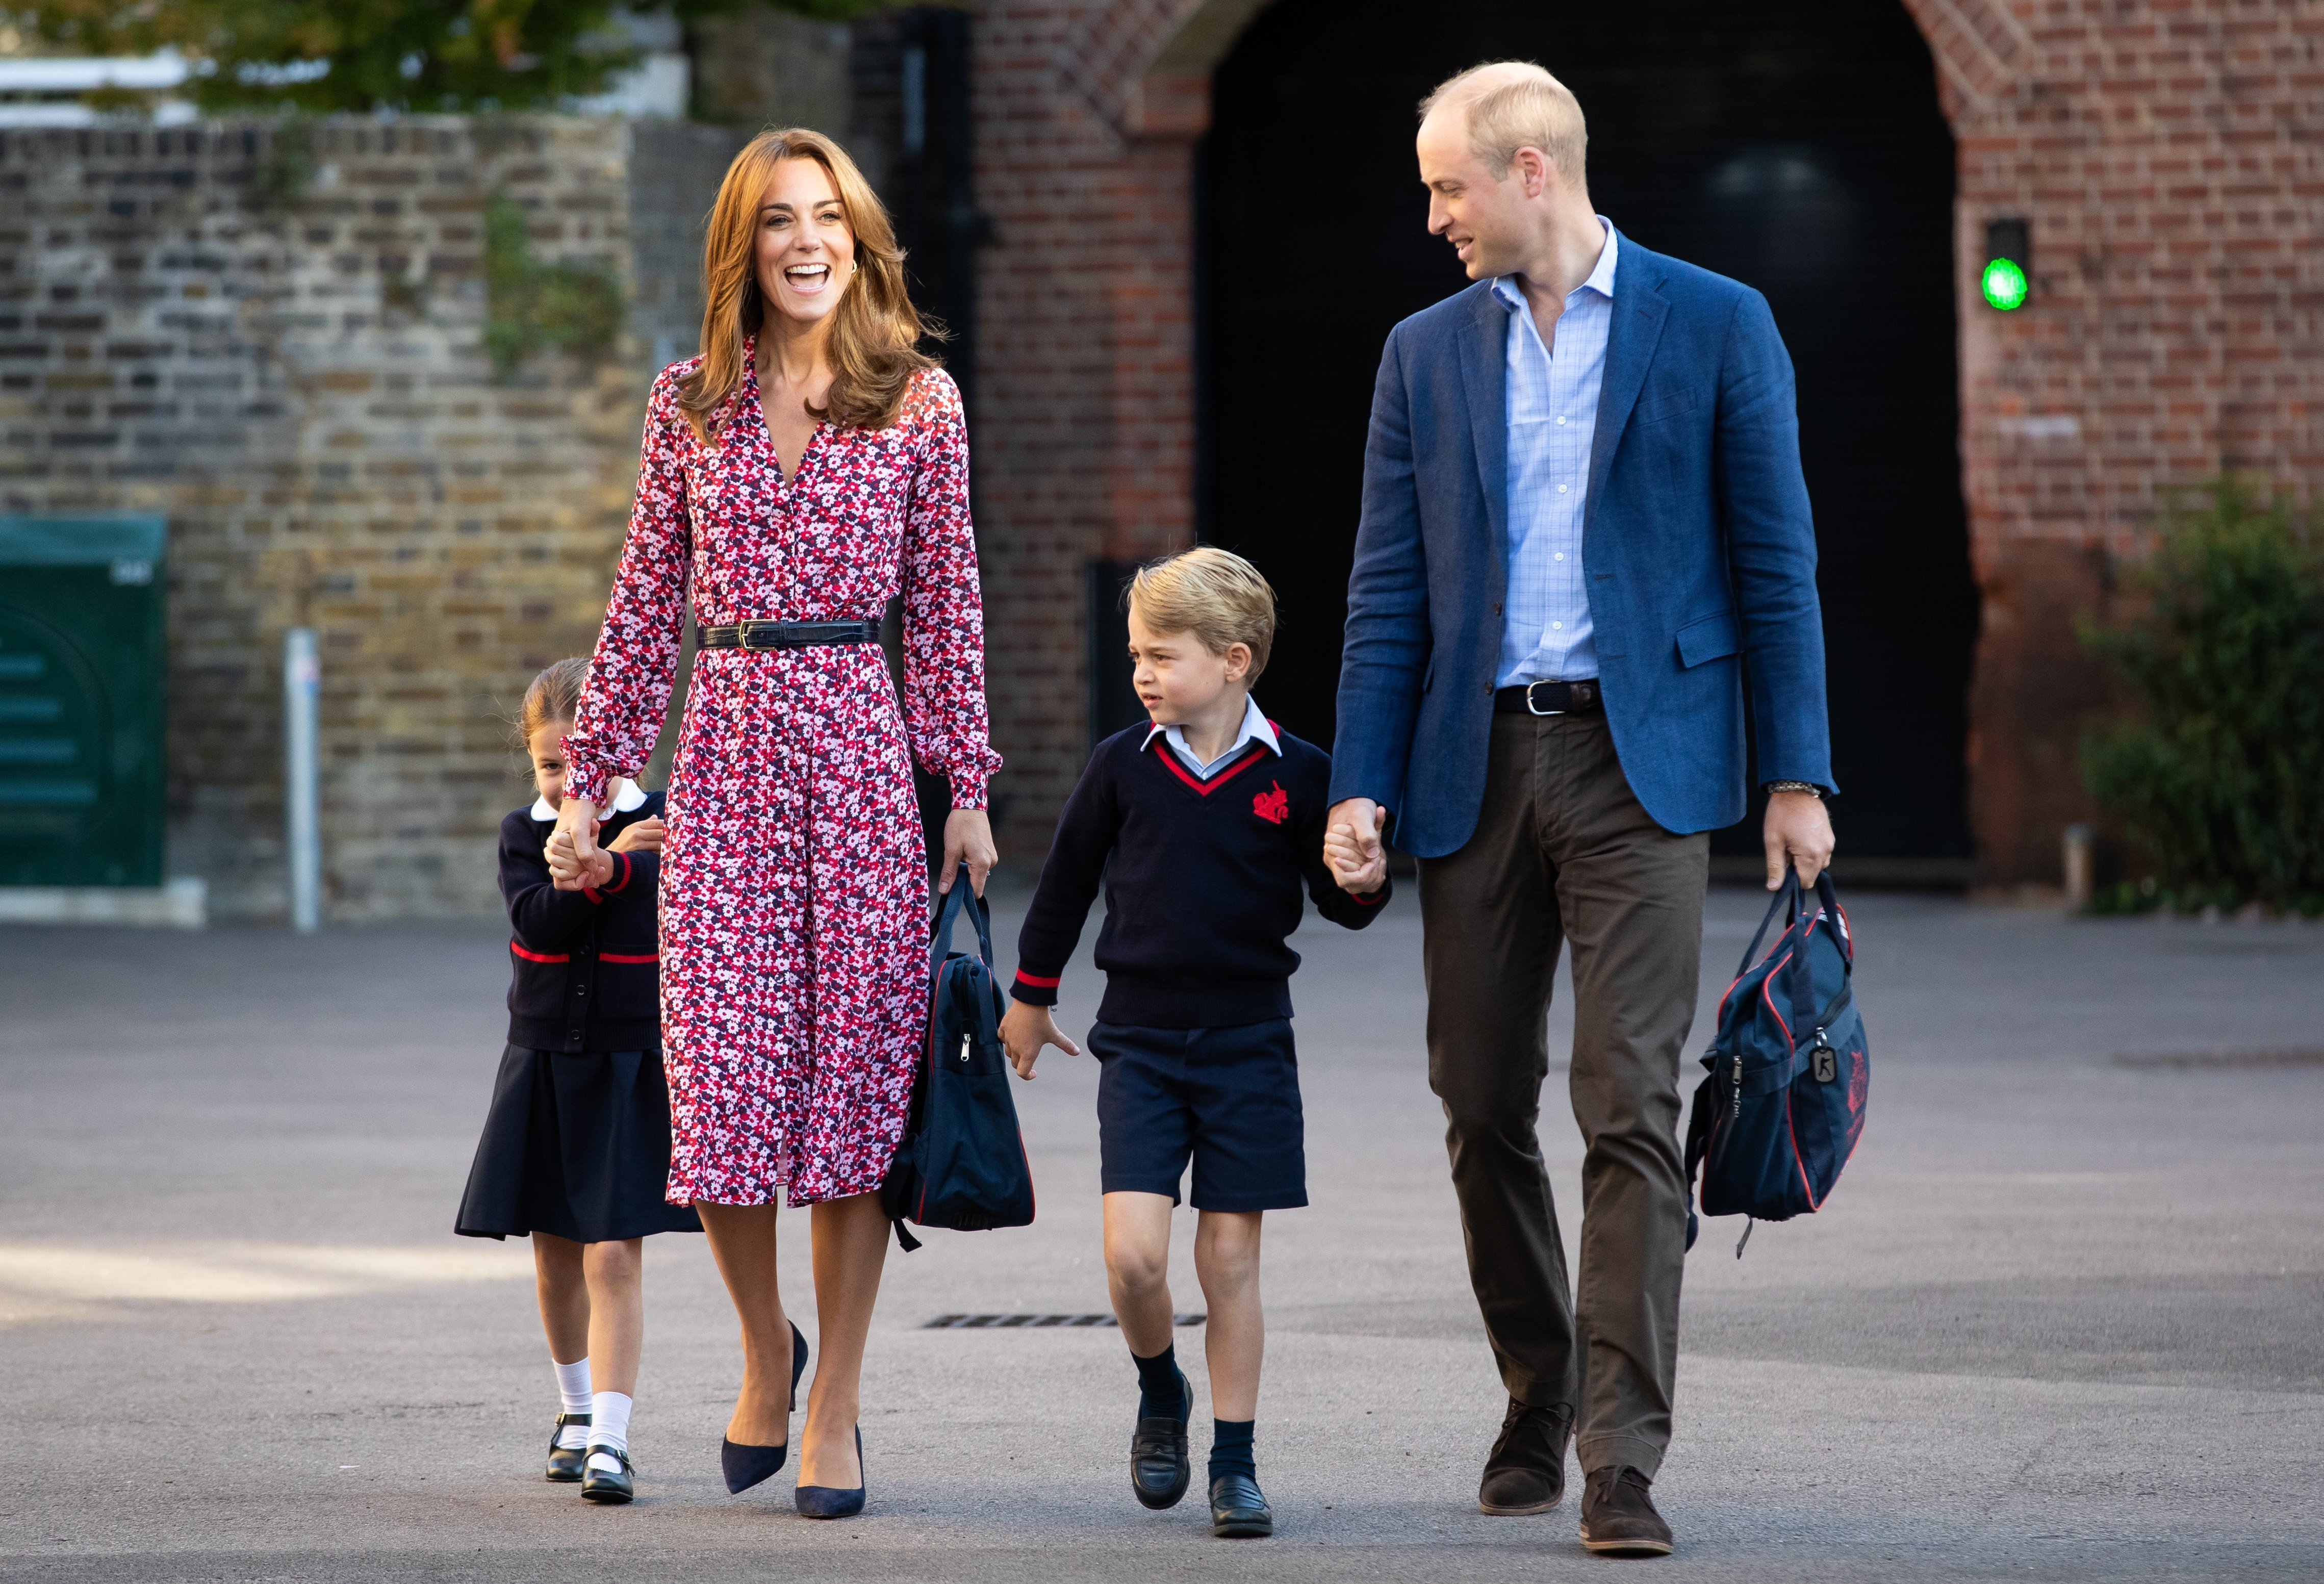 La duchesse Kate et le prince William arrivent avec la princesse Charlotte et le prince George à Thomas's Battersea le 5 septembre 2019, à Londres, Angleterre | Photo : Getty Images